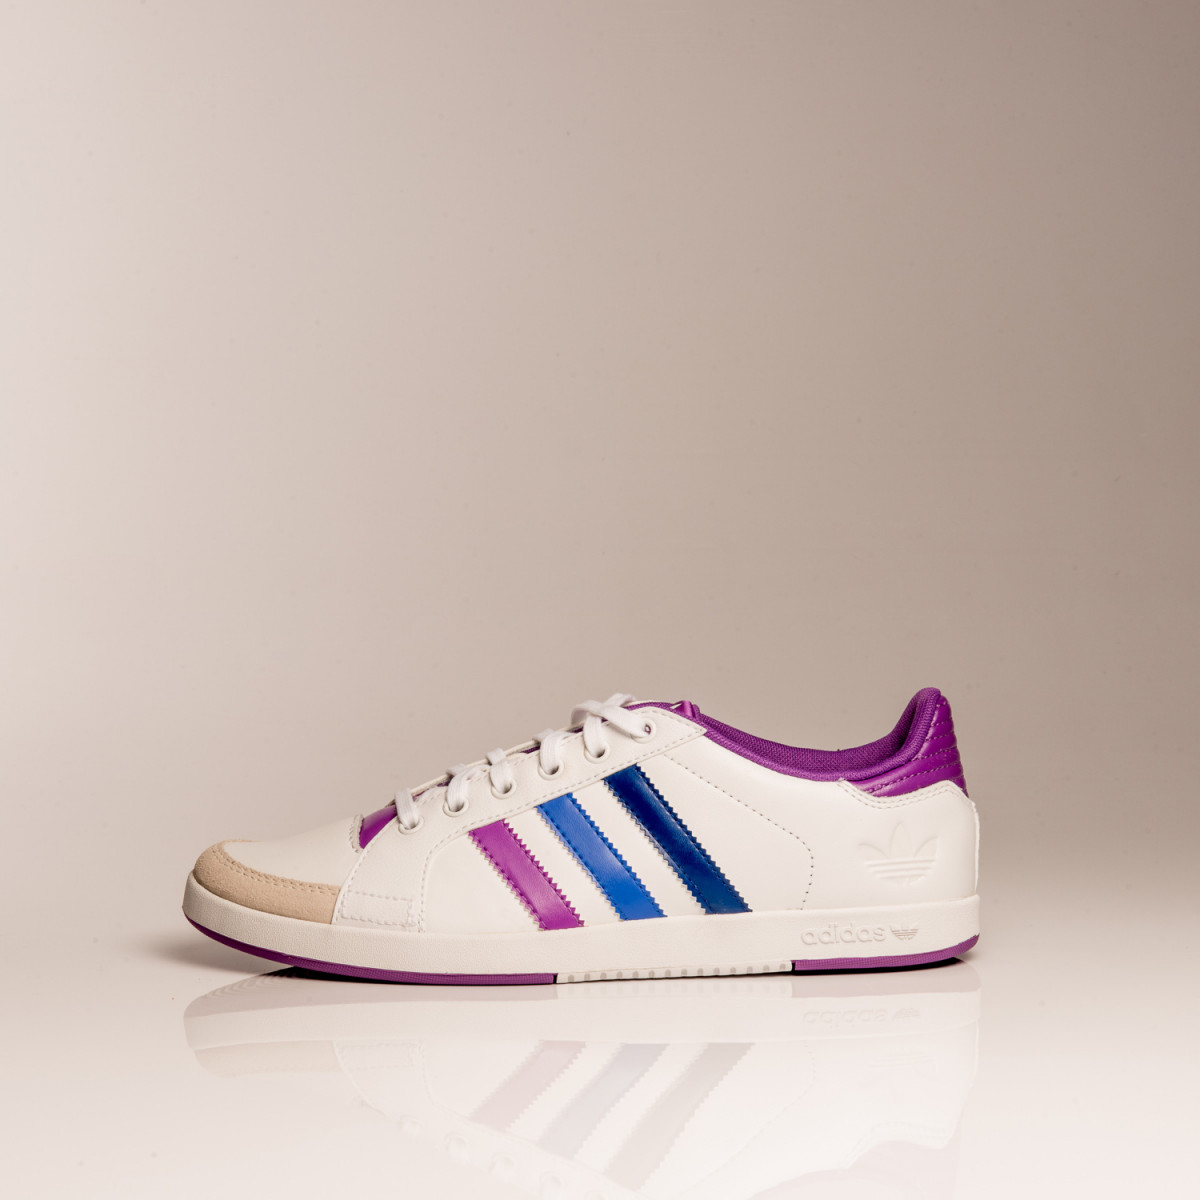 ZAPATILLAS ADIDAS ORIGINALS COURT SIDE LOW W